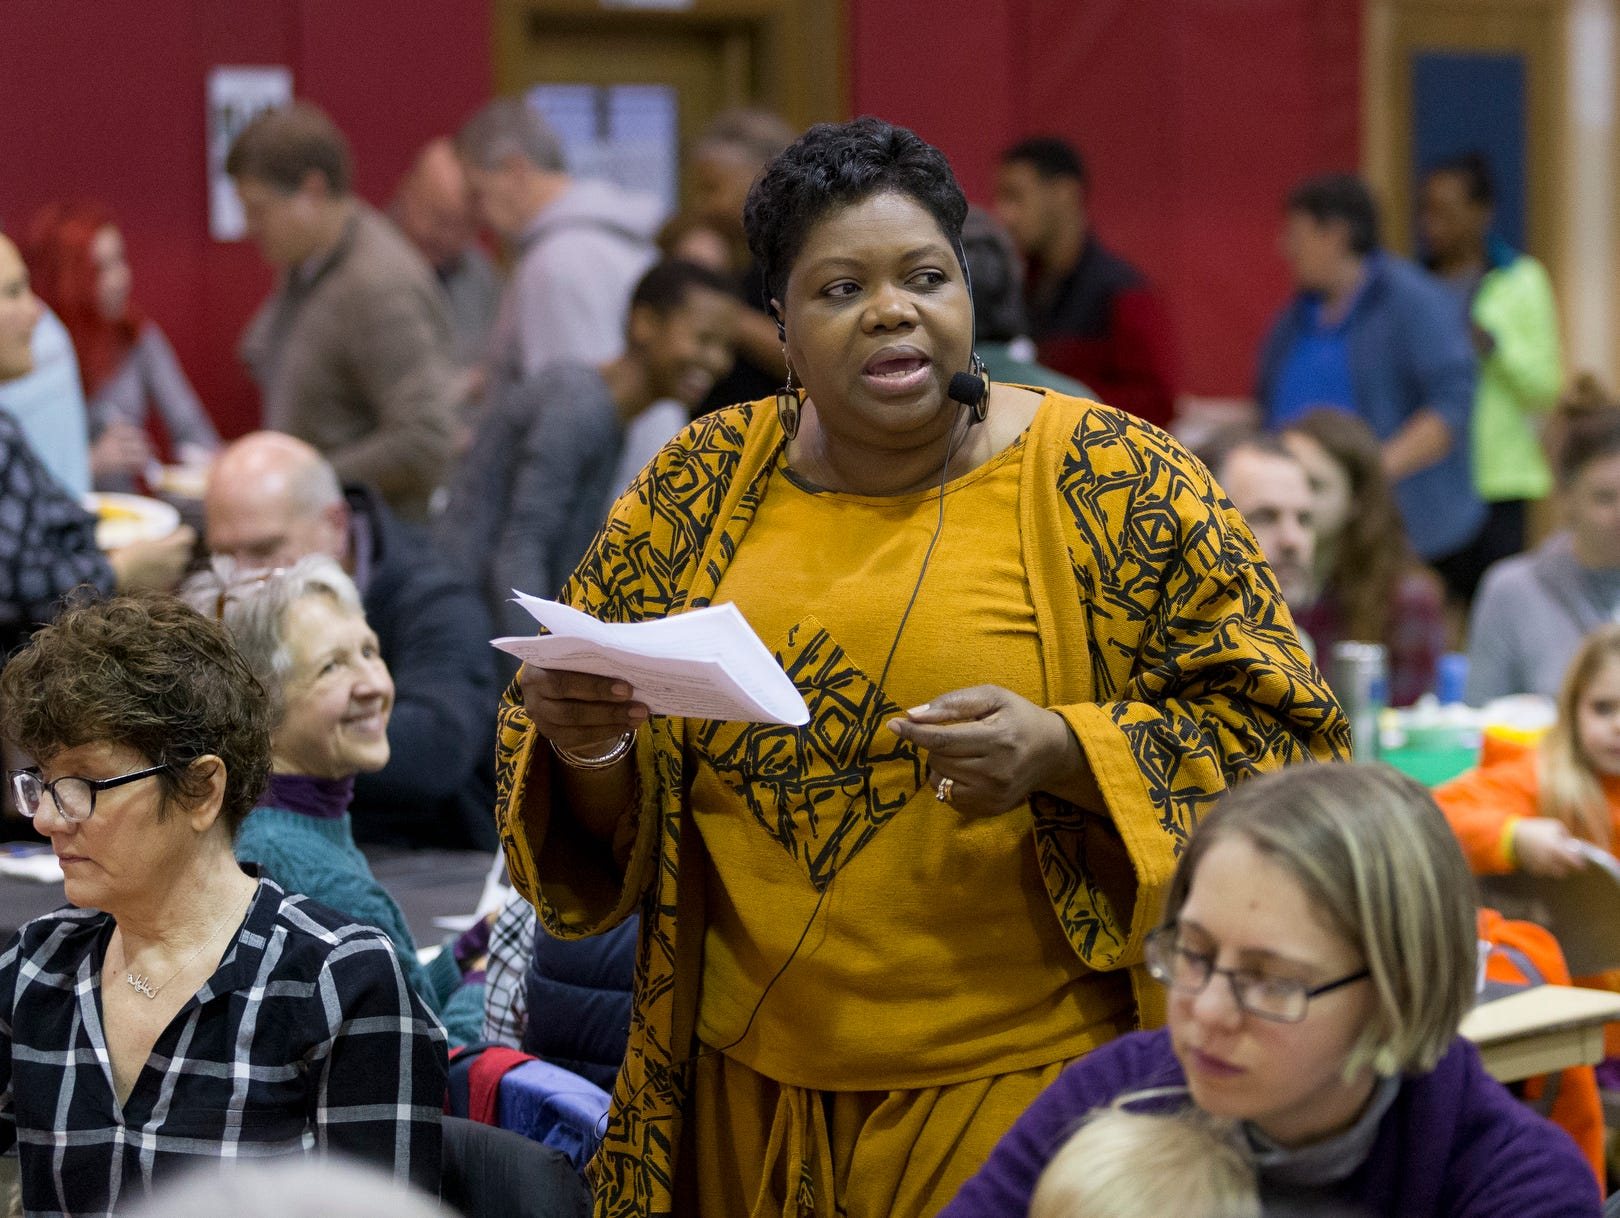 2016: Leslyn McBean Clairborne, the interim executive director of the Greater Ithaca Activities Center, delivers her welcome address Saturday morning while walking through he crowd at center's annual Martin Luther King Jr. Breakfast.